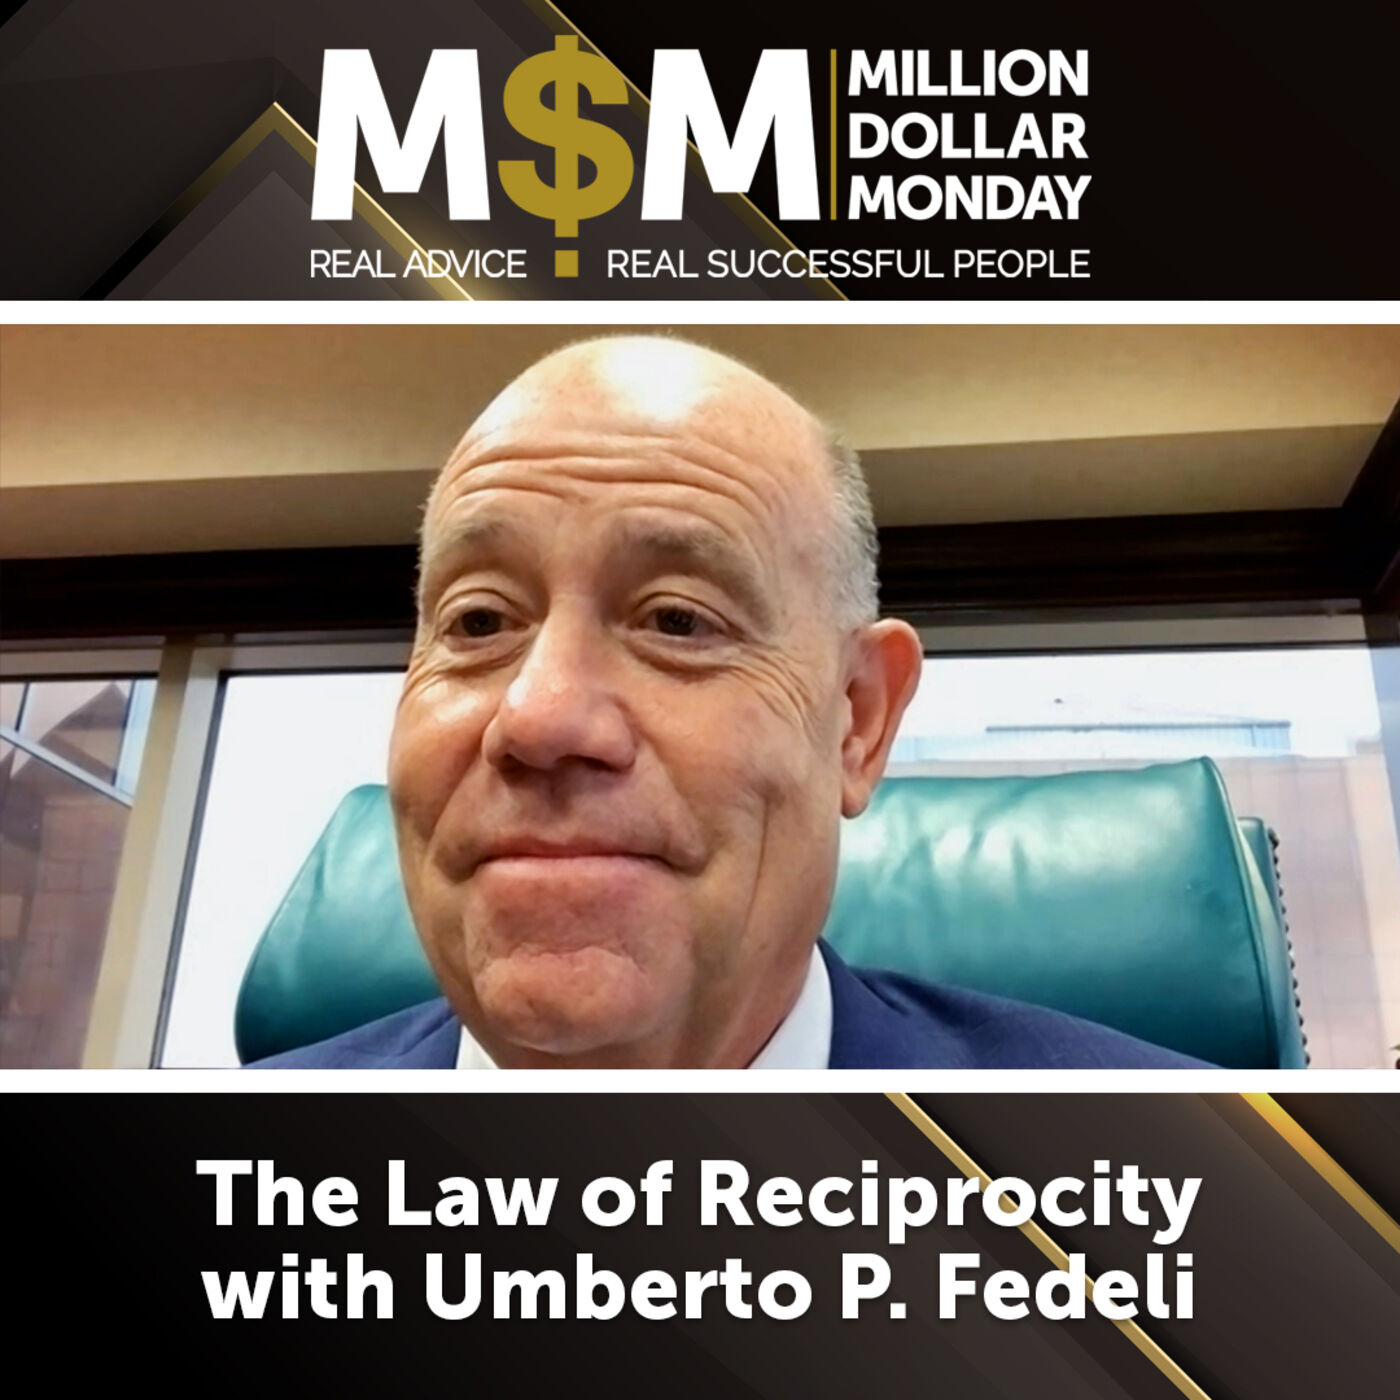 The Law of Reciprocity with Umberto P. Fedeli